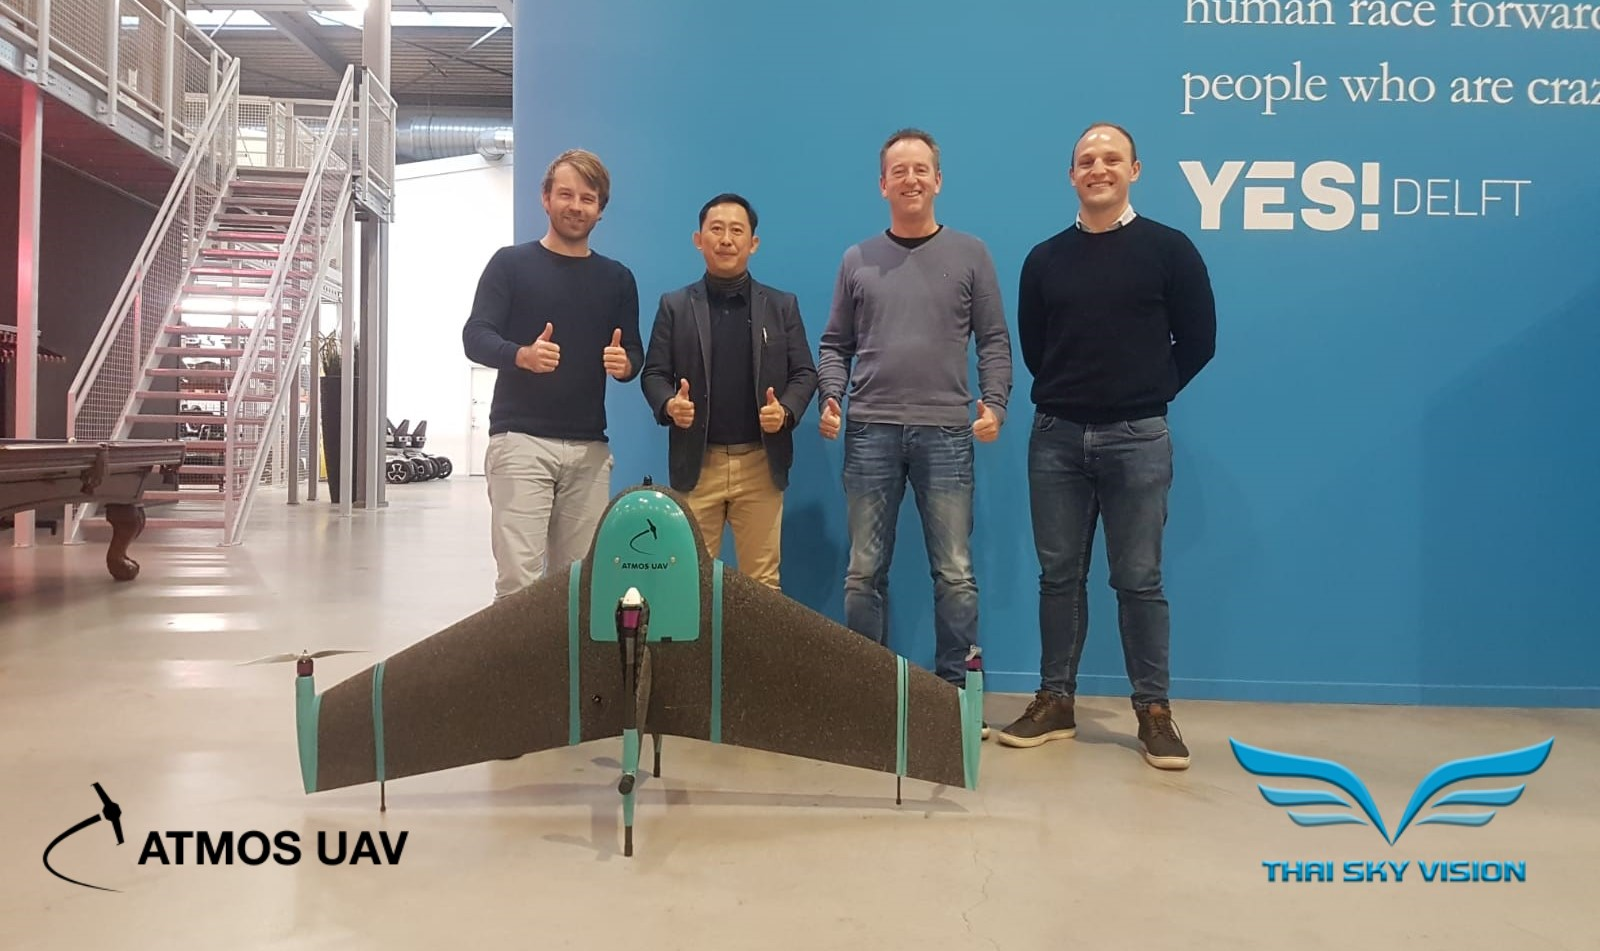 Sander Hulsman, Sakan Ariyachotima, René Worms, and James McLachlan at Atmos UAV HQ